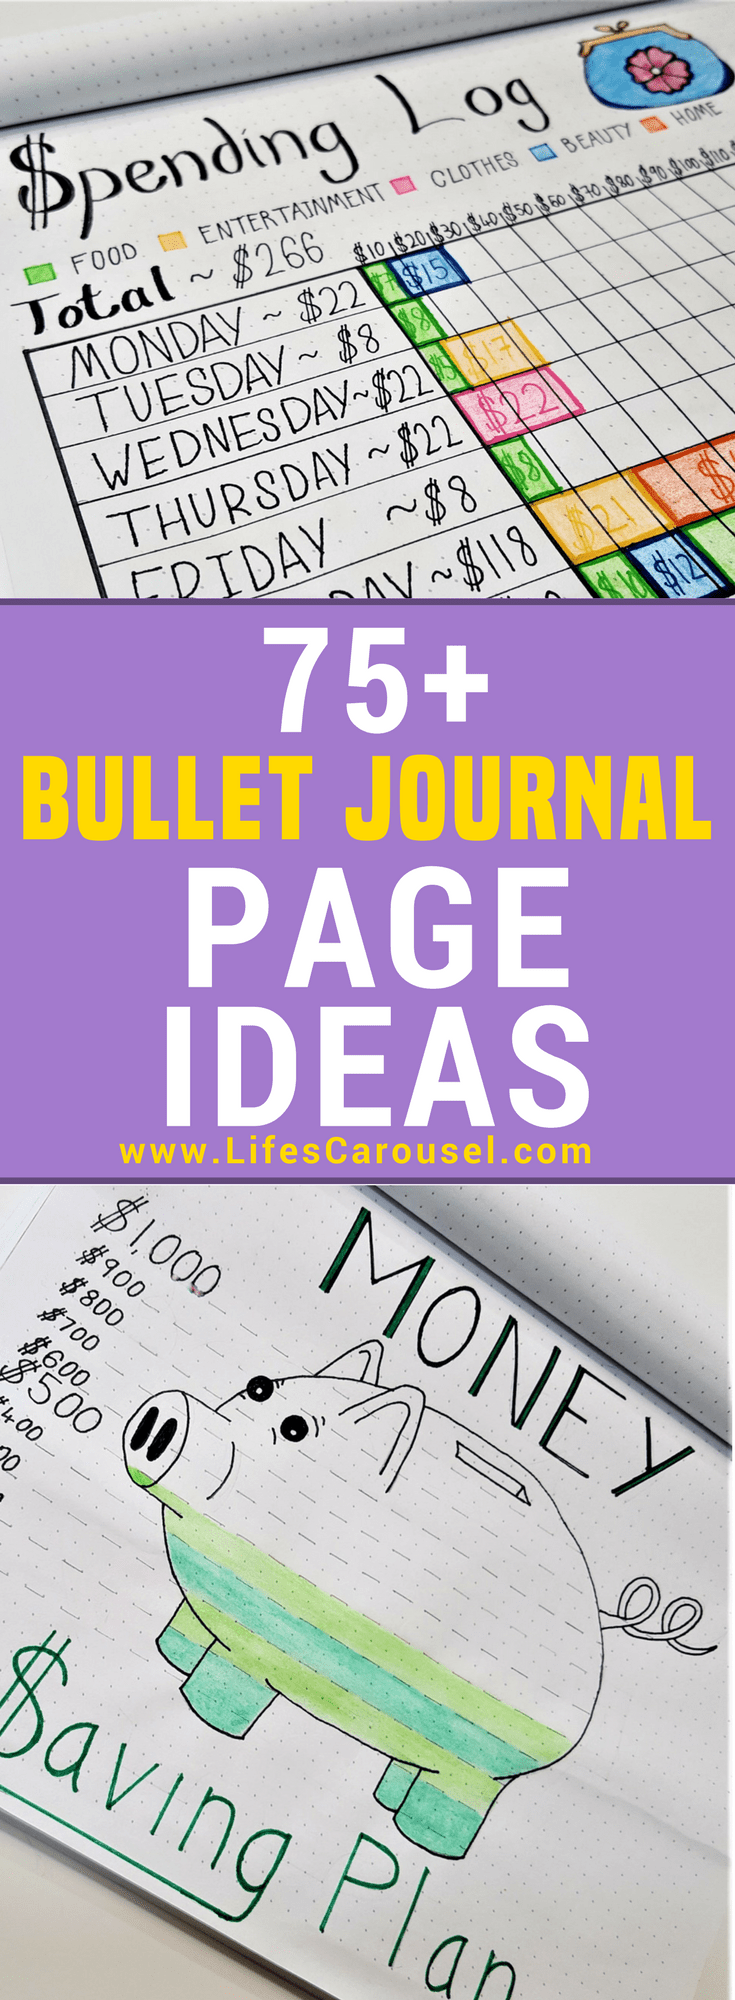 Bullet Journal Page Ideas - The Ultimate List of 75+ Bujo Page Ideas #halloweenbulletjournal